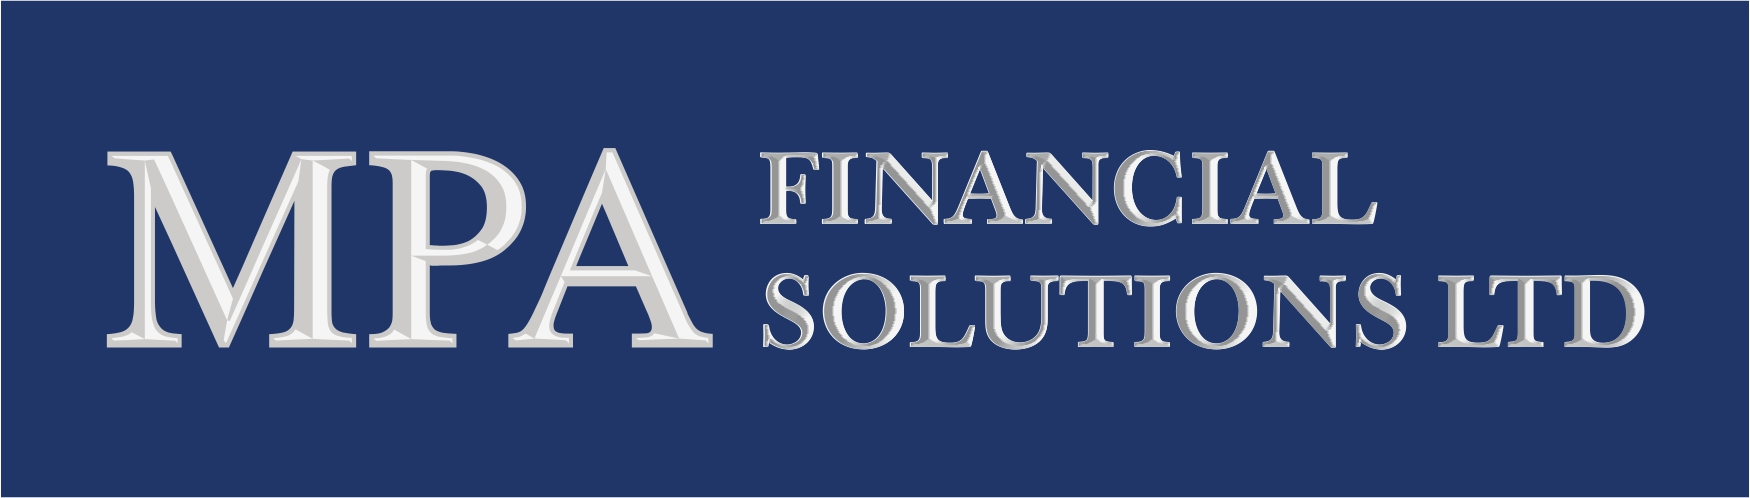 MPA Financial Solutions Ltd Logo